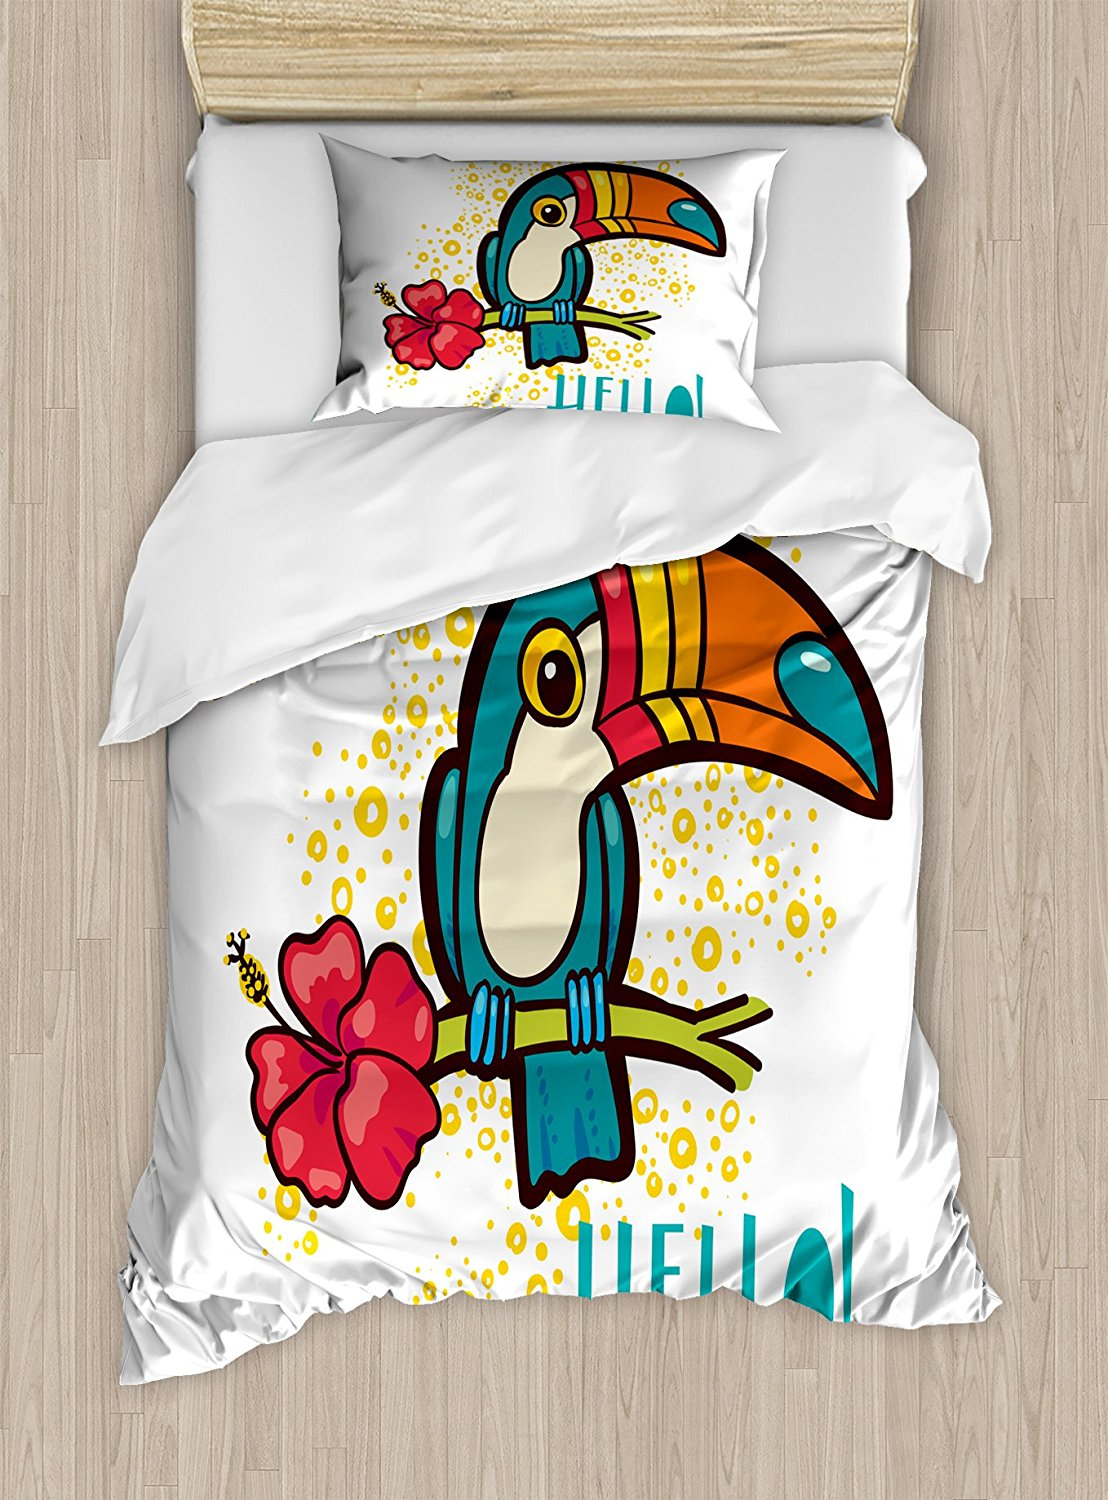 Hello Duvet Cover Set A Tropical Hello from Hawaiian Island Ramphastidae Toucan Bird with Hibiscus Flower Decor 4pcs Bedding Set